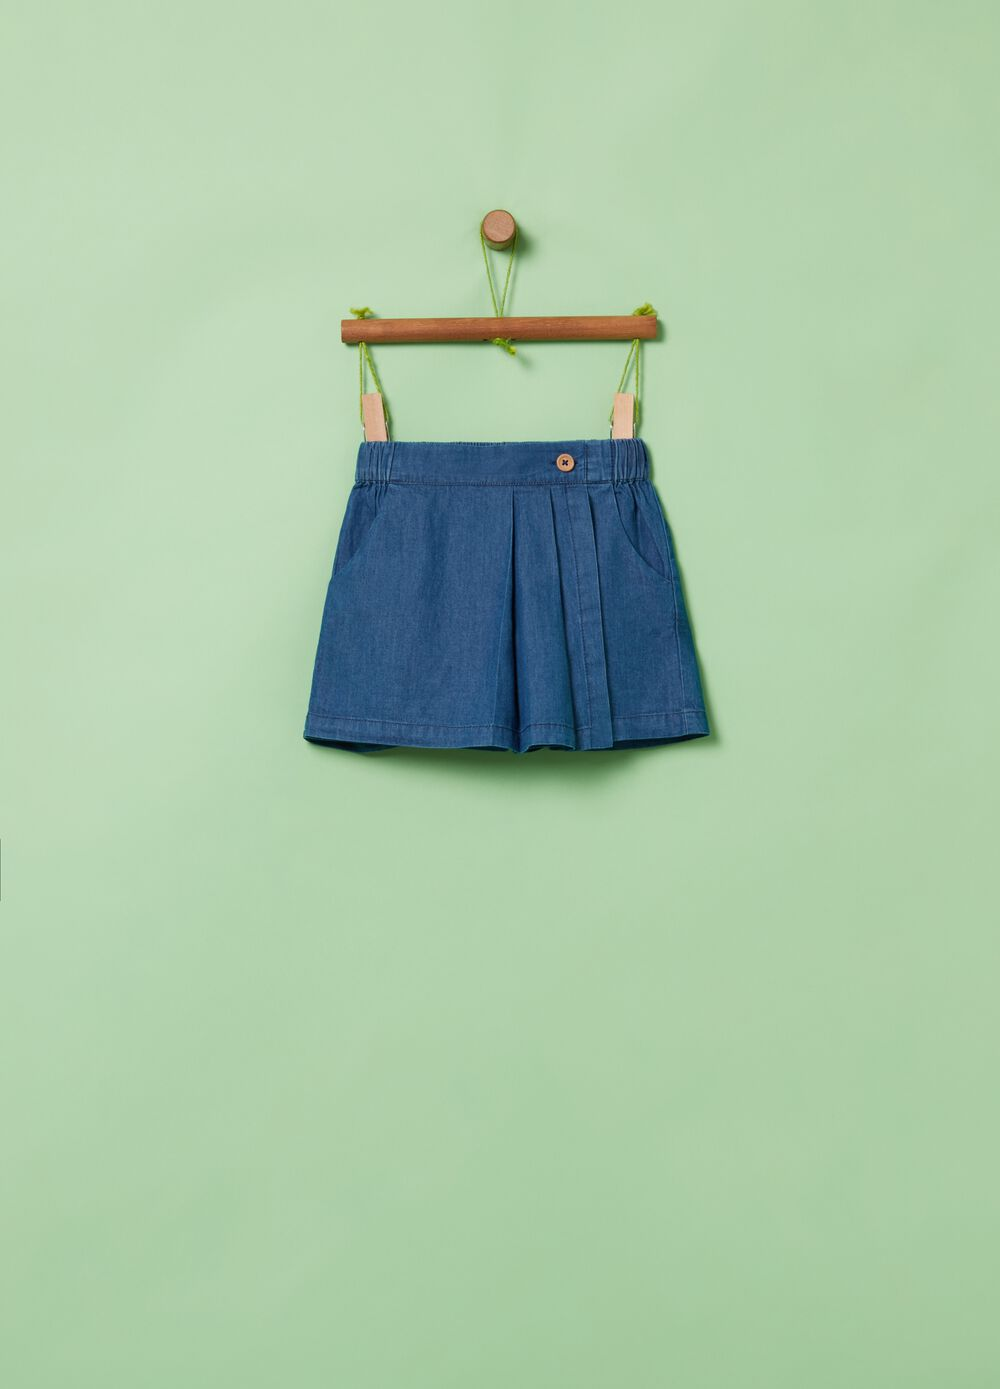 Denim-effect shorts with pockets